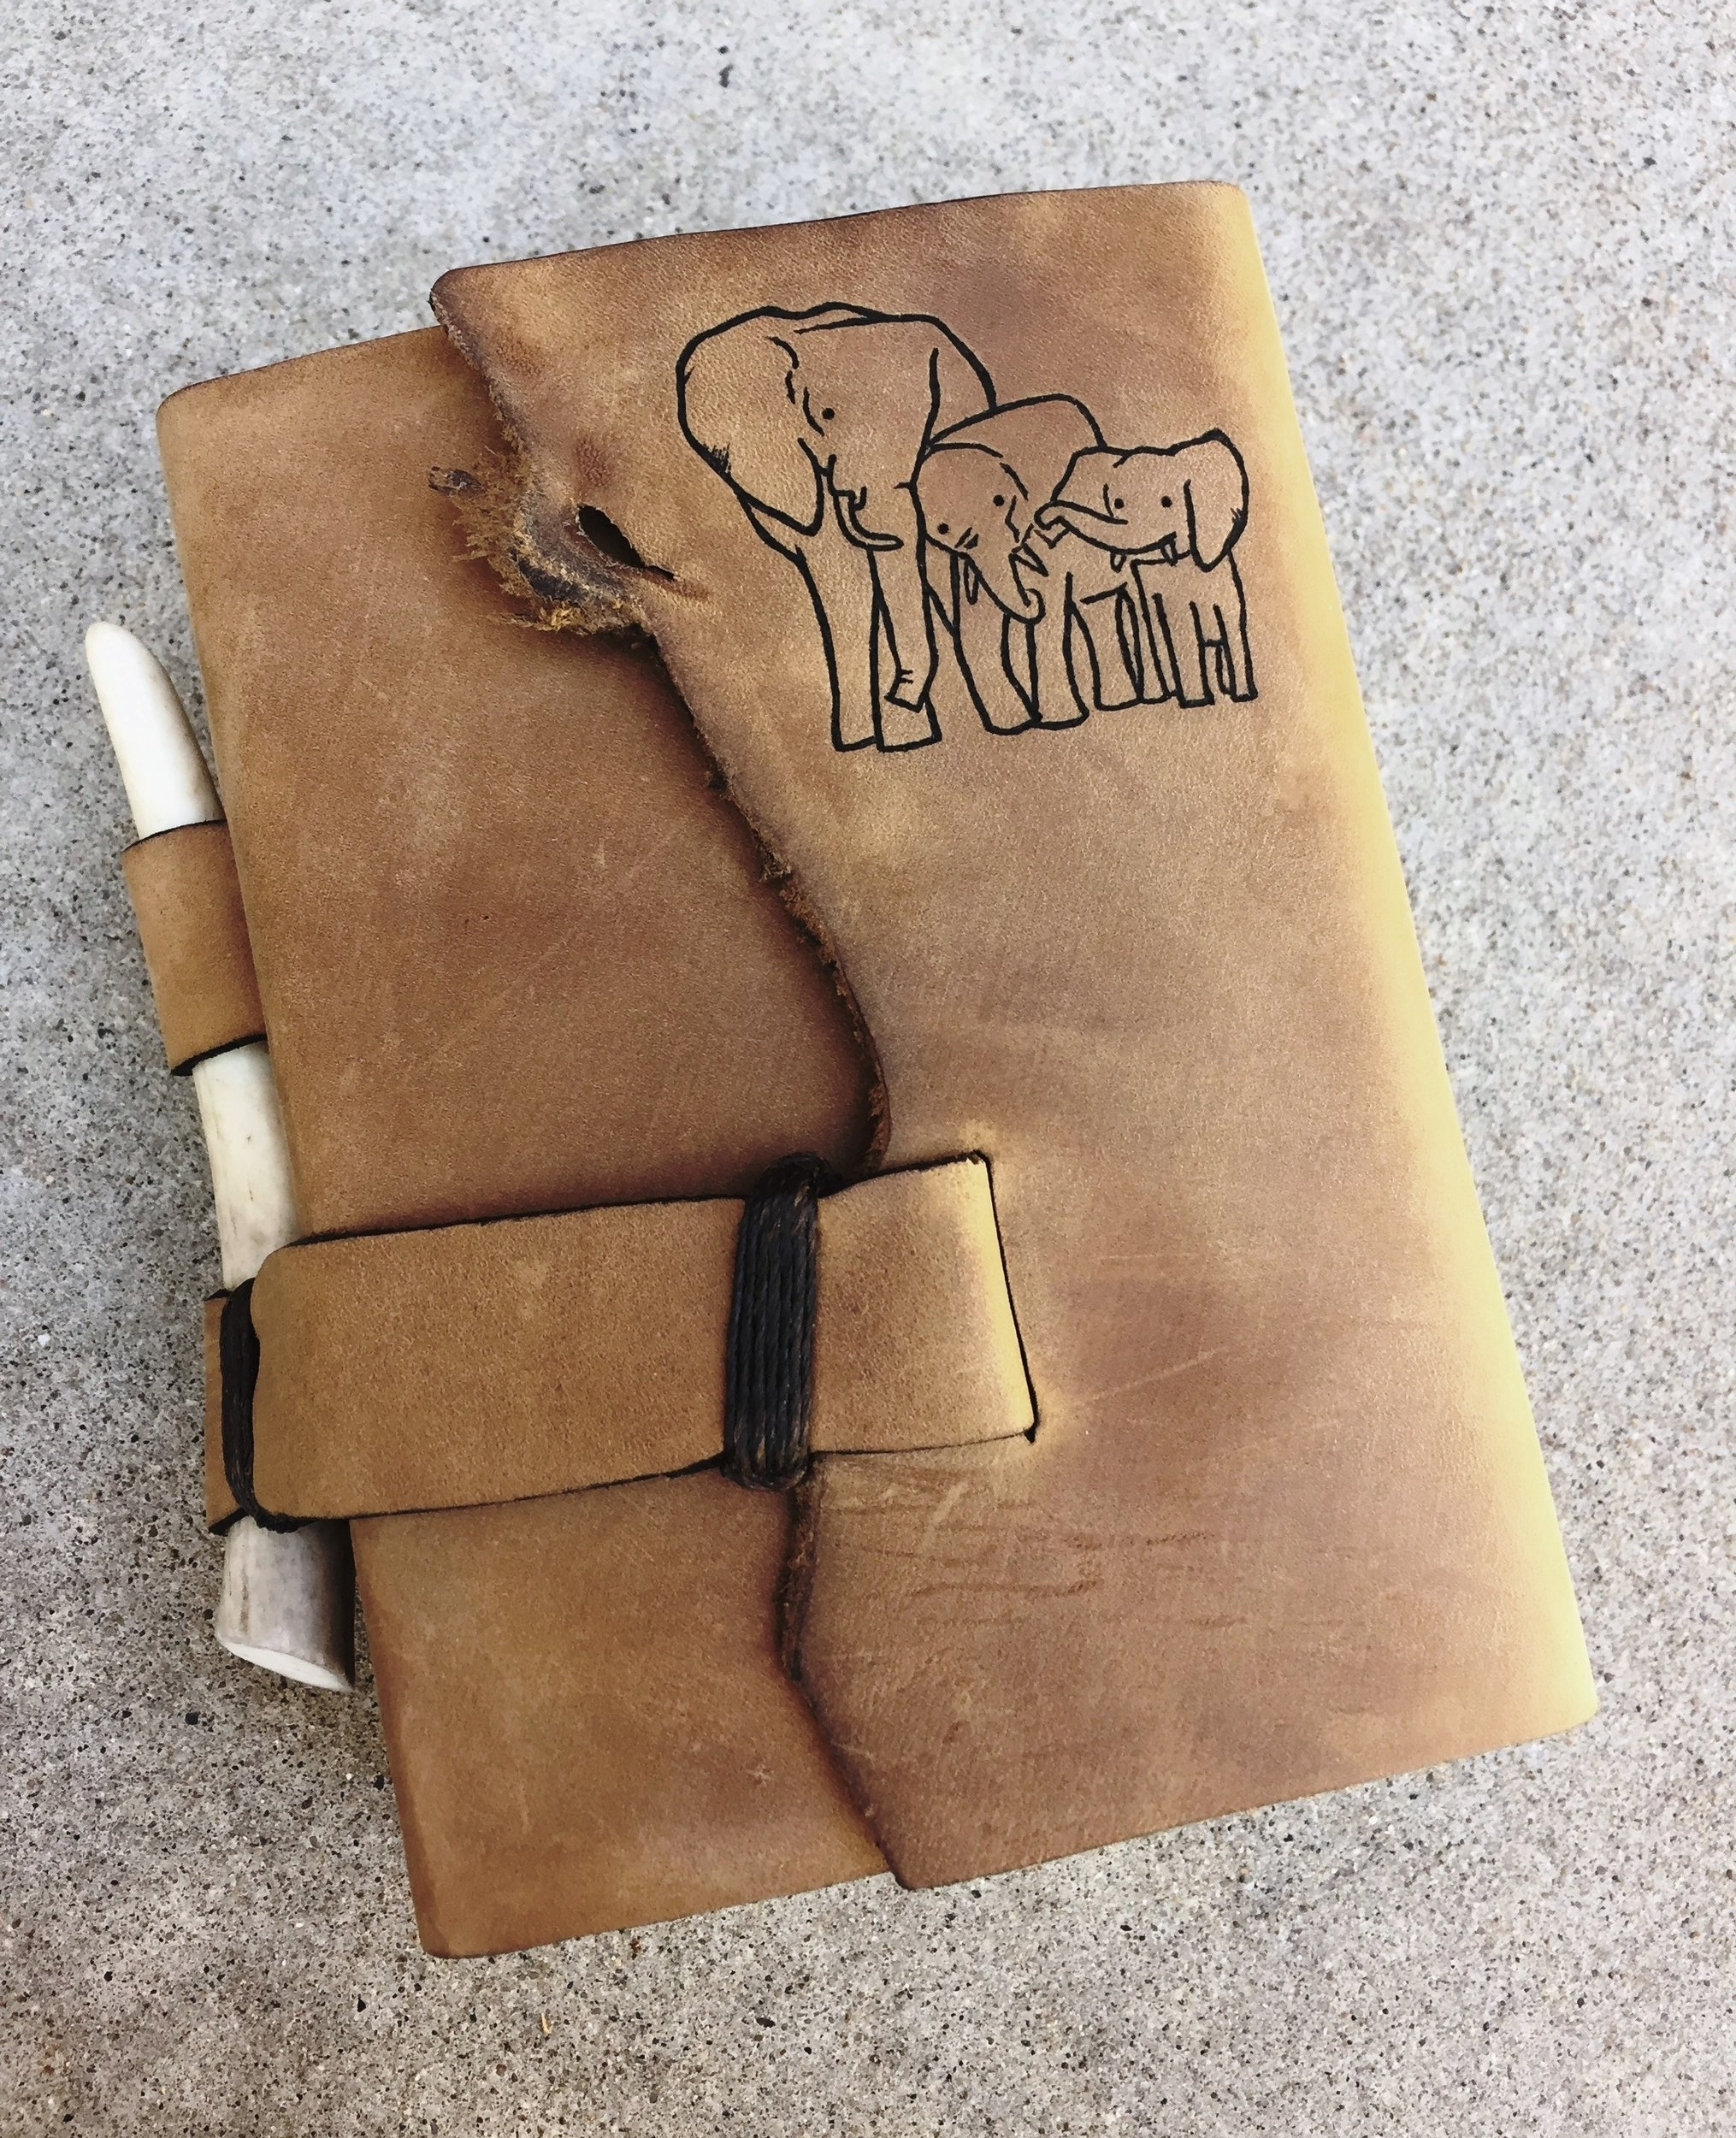 Circle M Brand - LDS compact Quad Scriptures with Antler and Elephants engraving.JPG